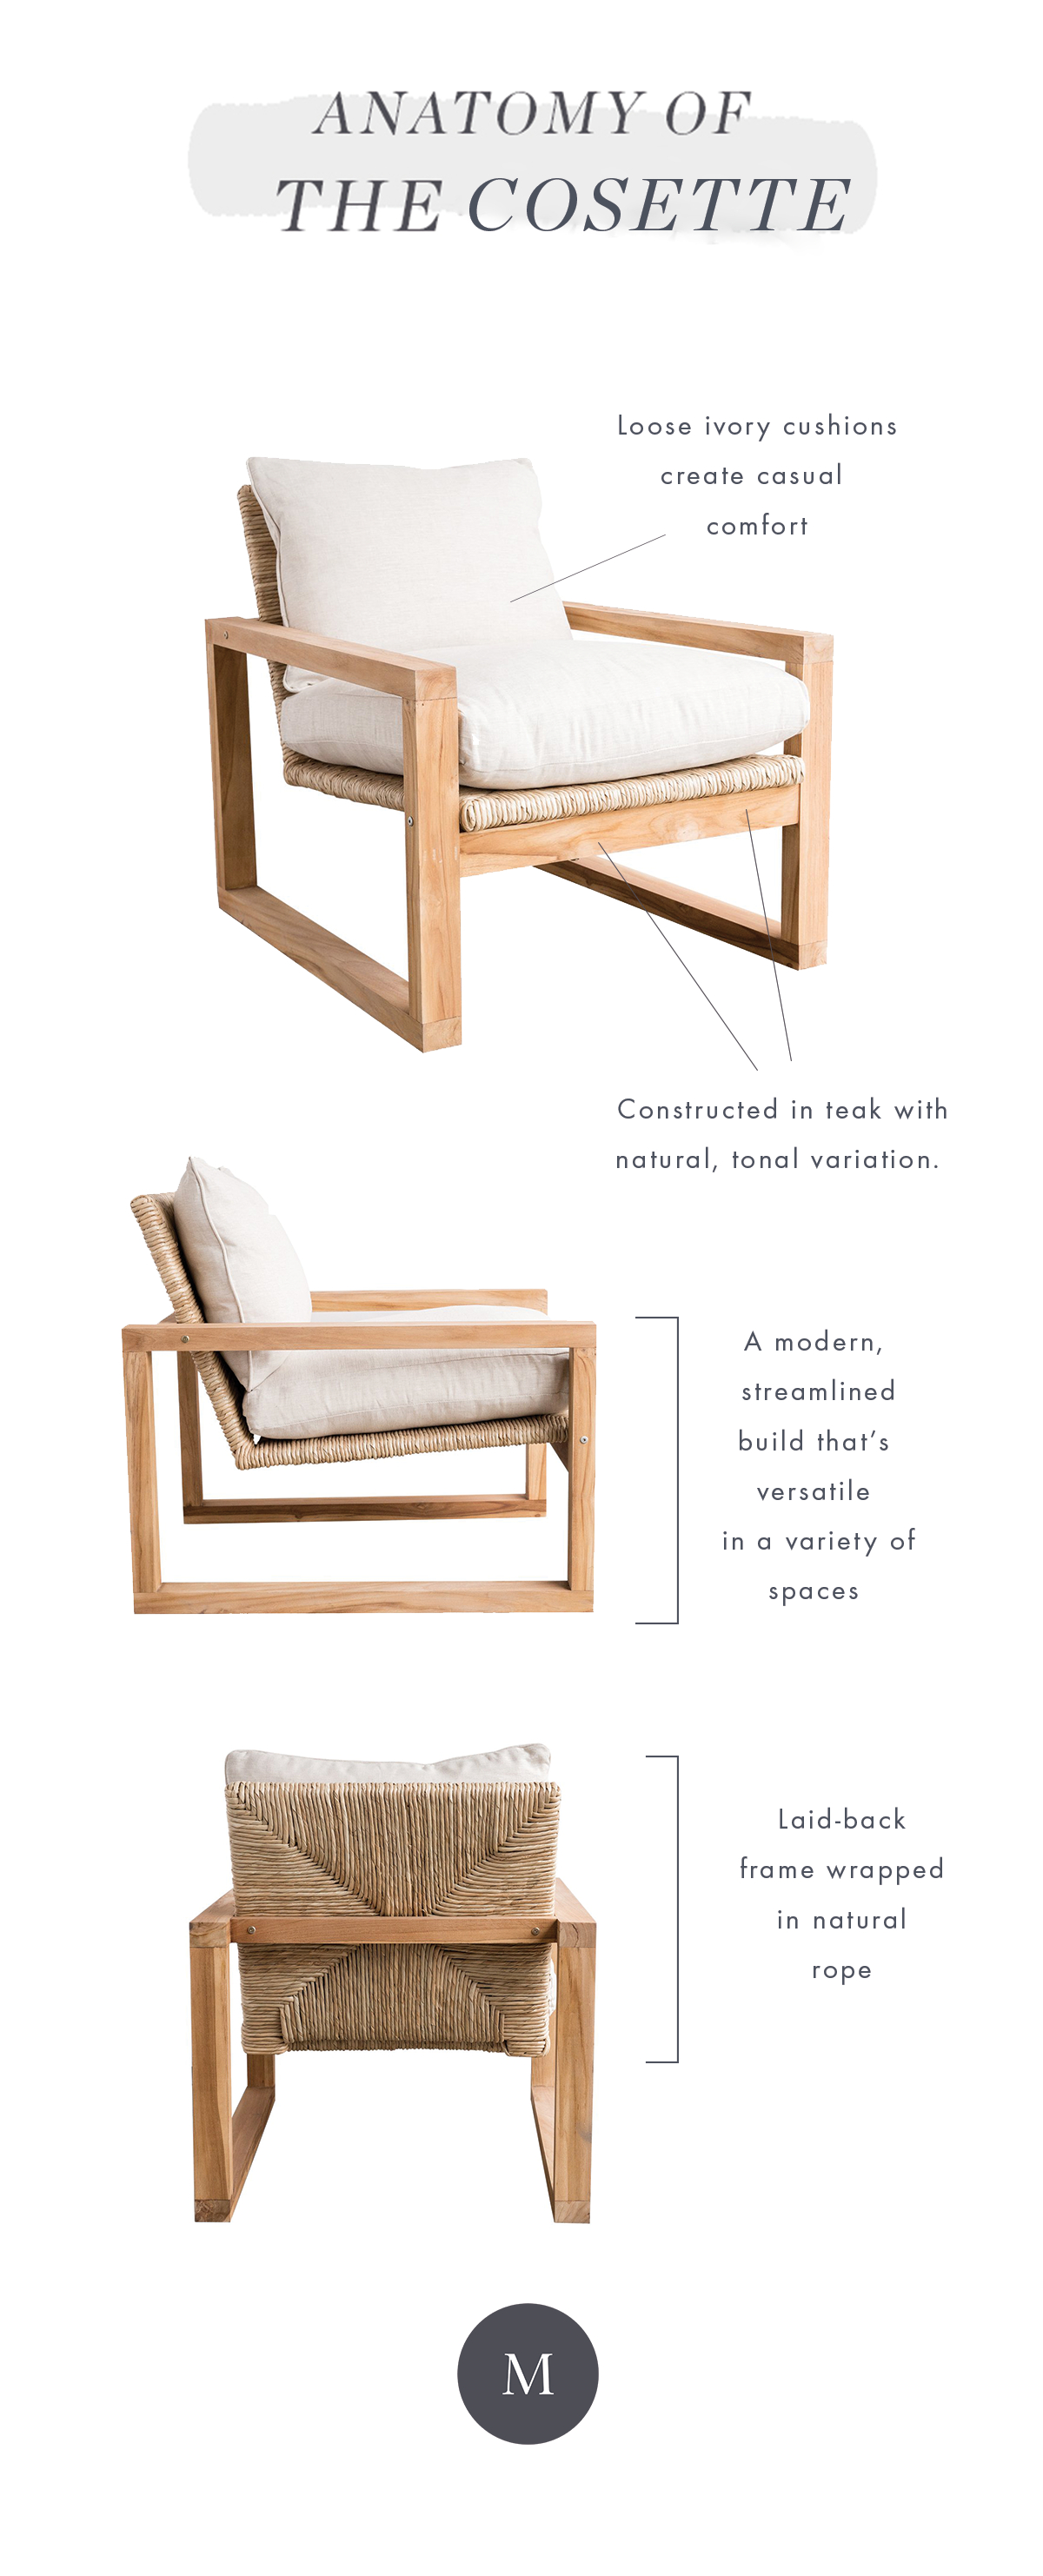 Meet The Cosette Chair In 2018 | Studio Mcgee Blog | Pinterest In Cosette Leather Sofa Chairs (View 6 of 25)